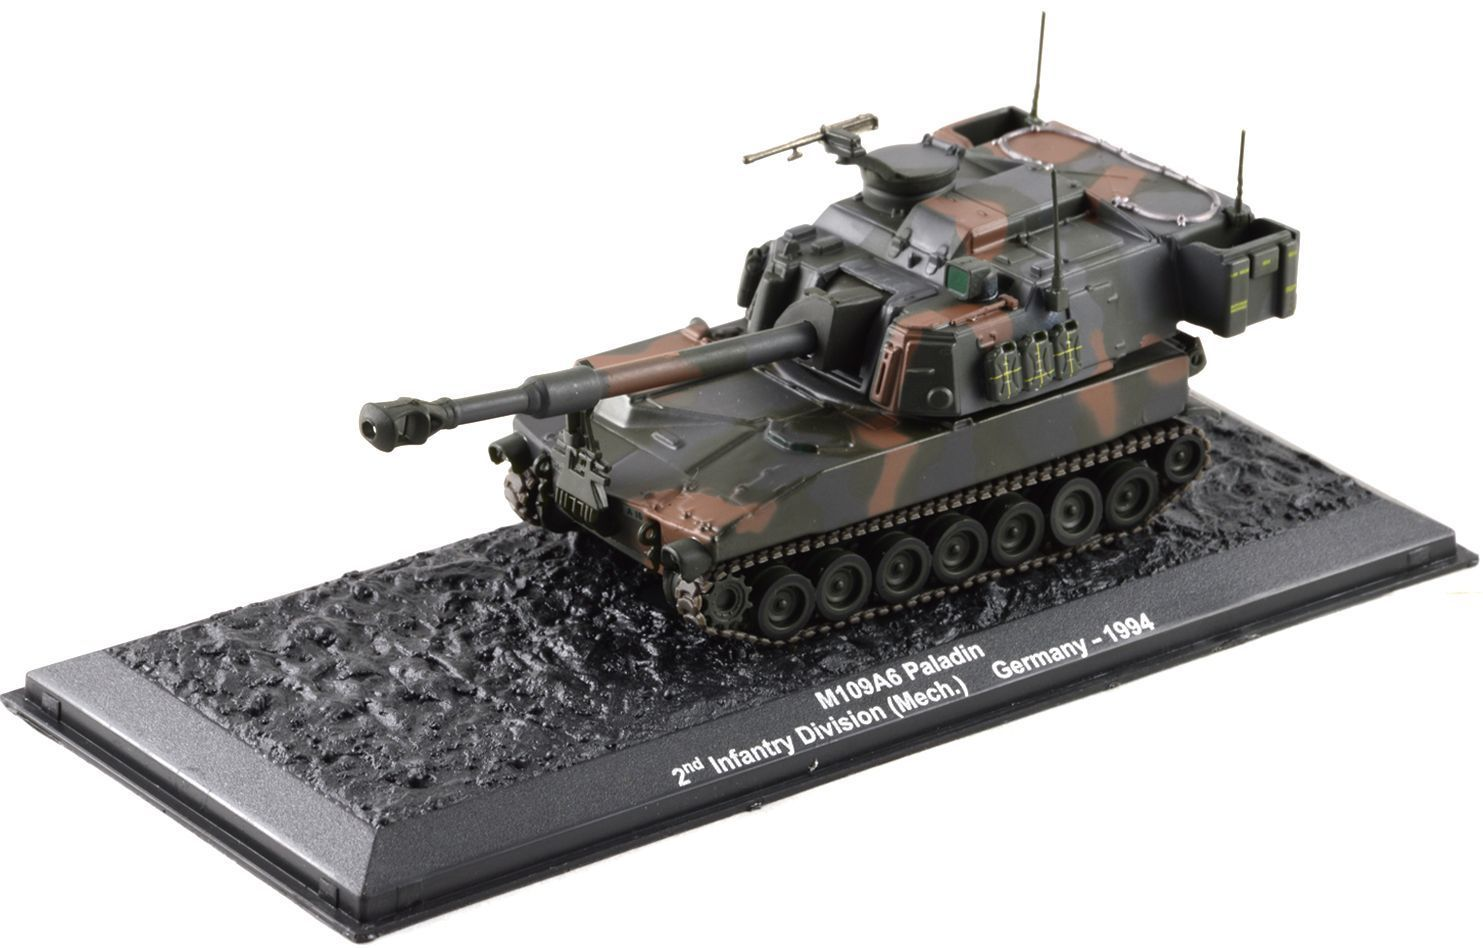 M109A6 Paladin 2nd infantry Division (Mech.) Germany 1994